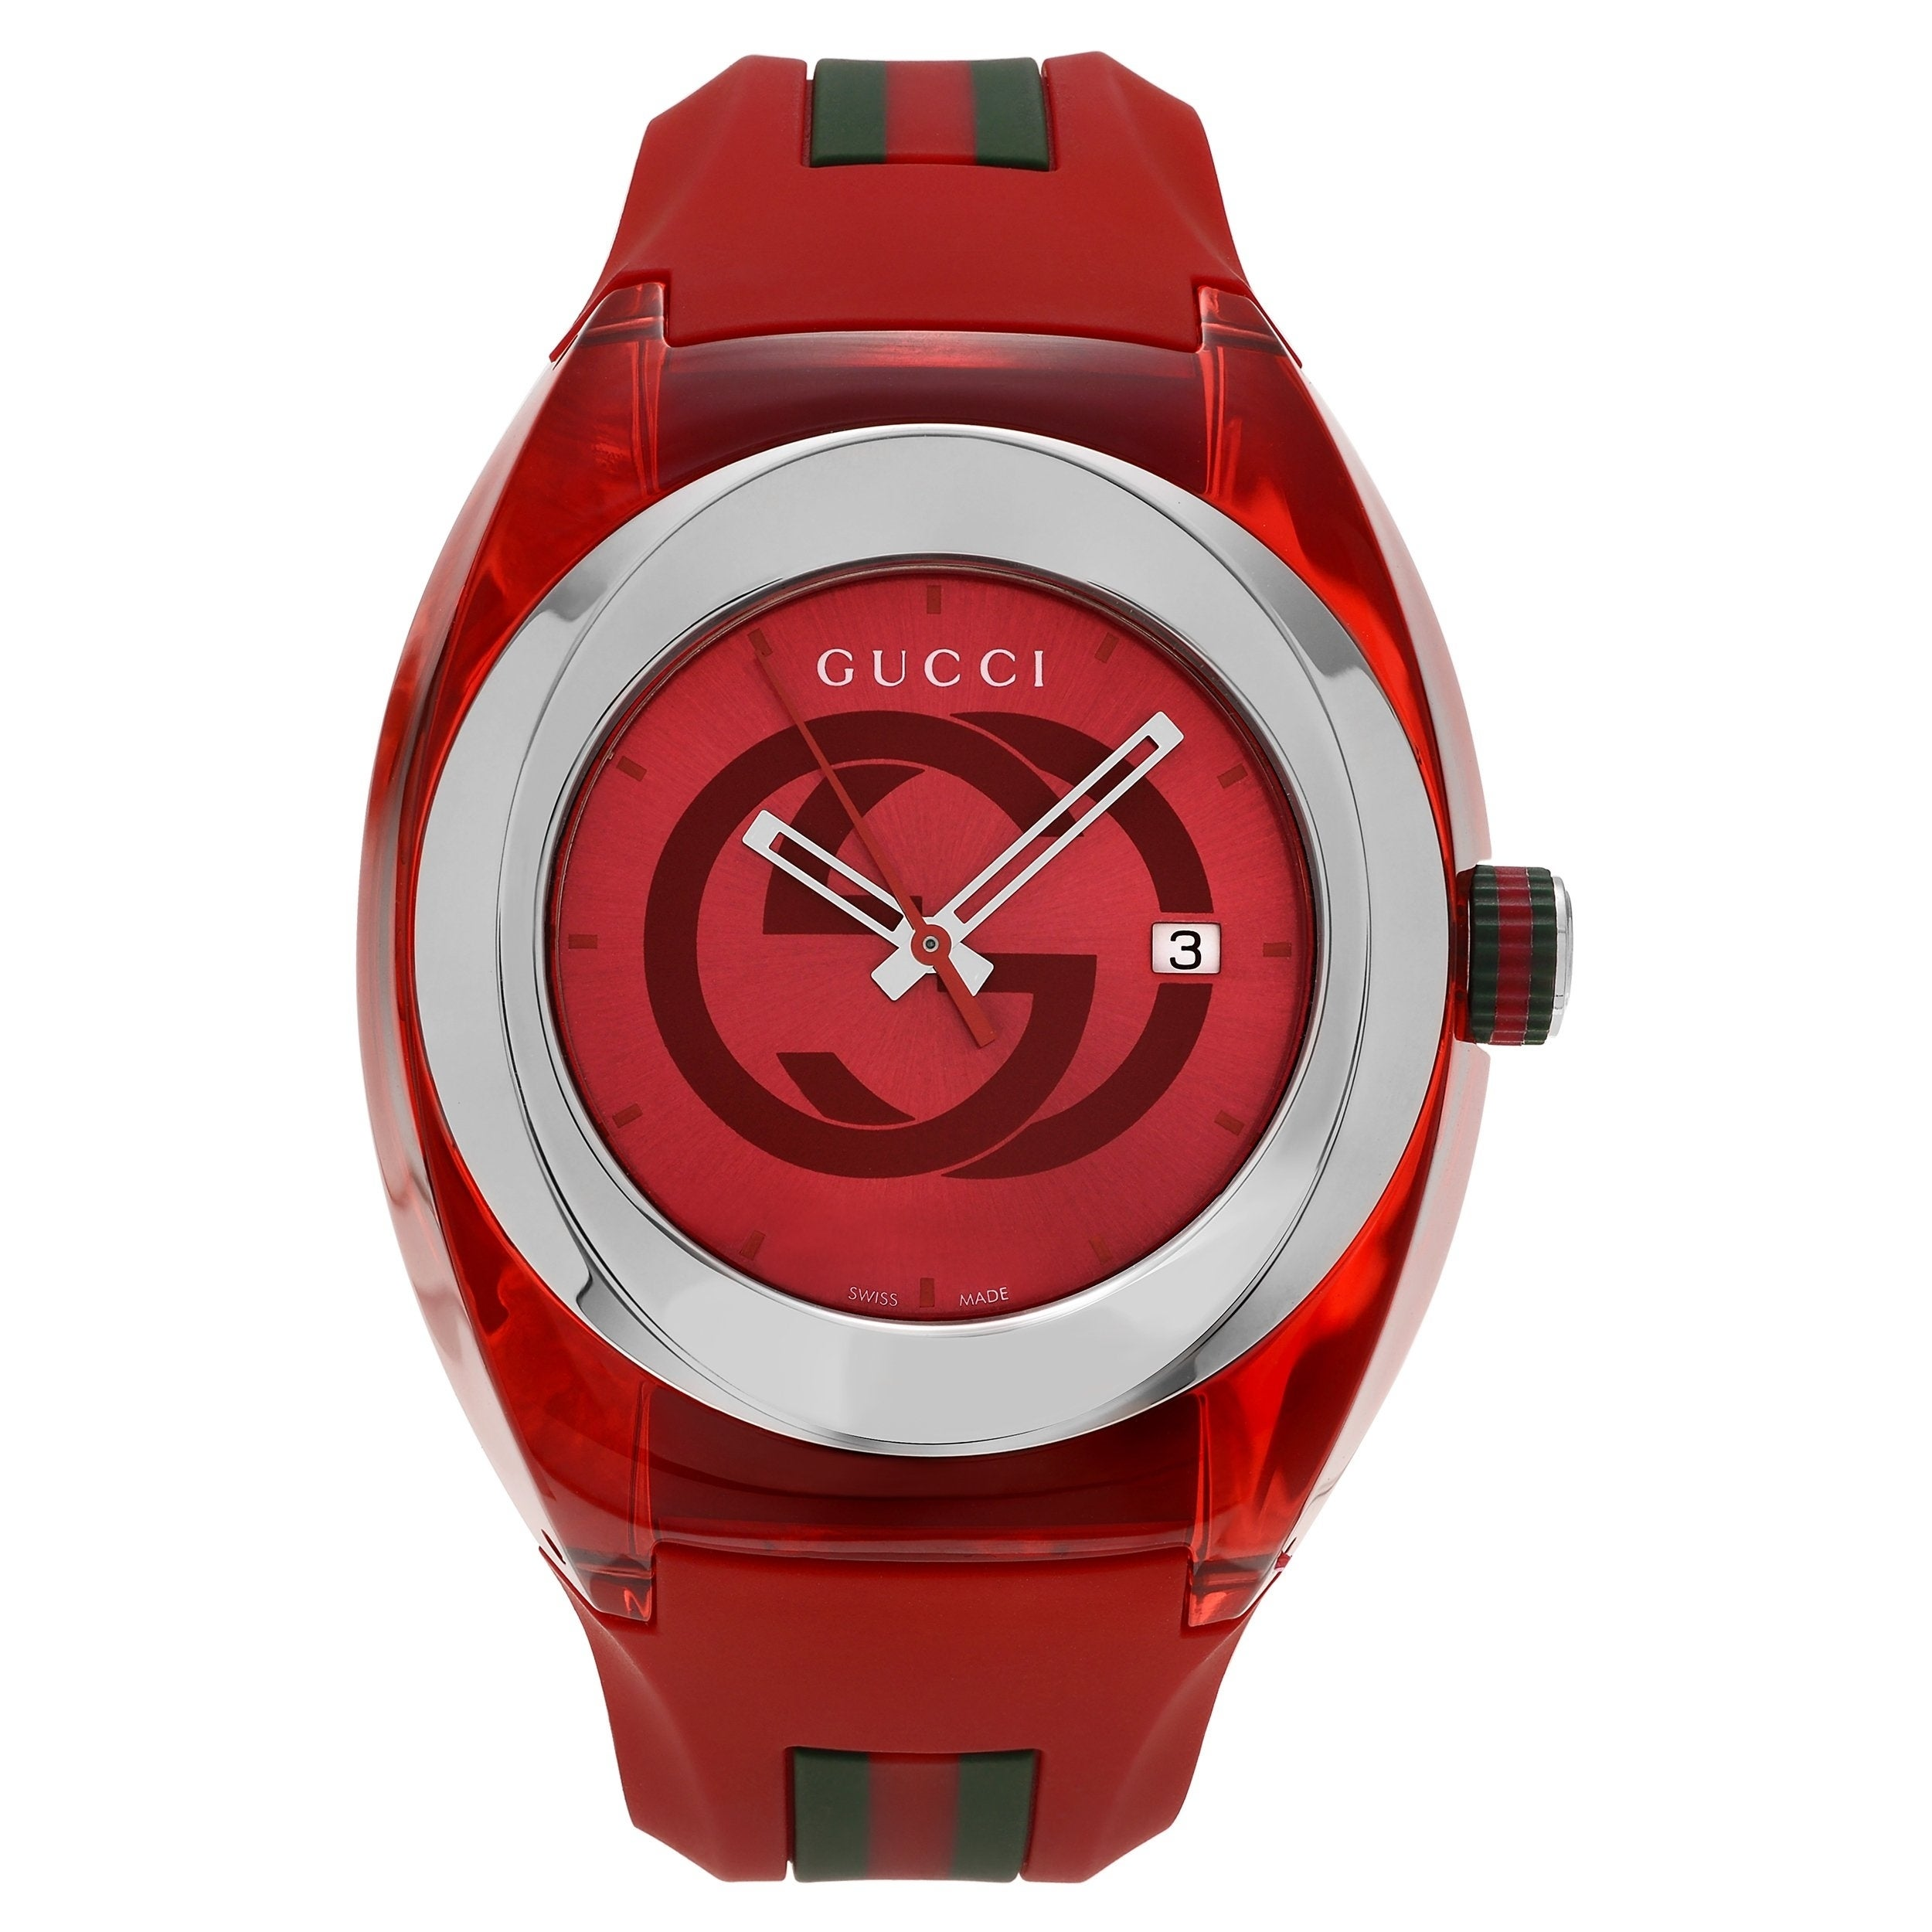 c14e2a2d525 Shop Gucci Men s Sync Stainless Steel Watch - Free Shipping Today -  Overstock - 22730660